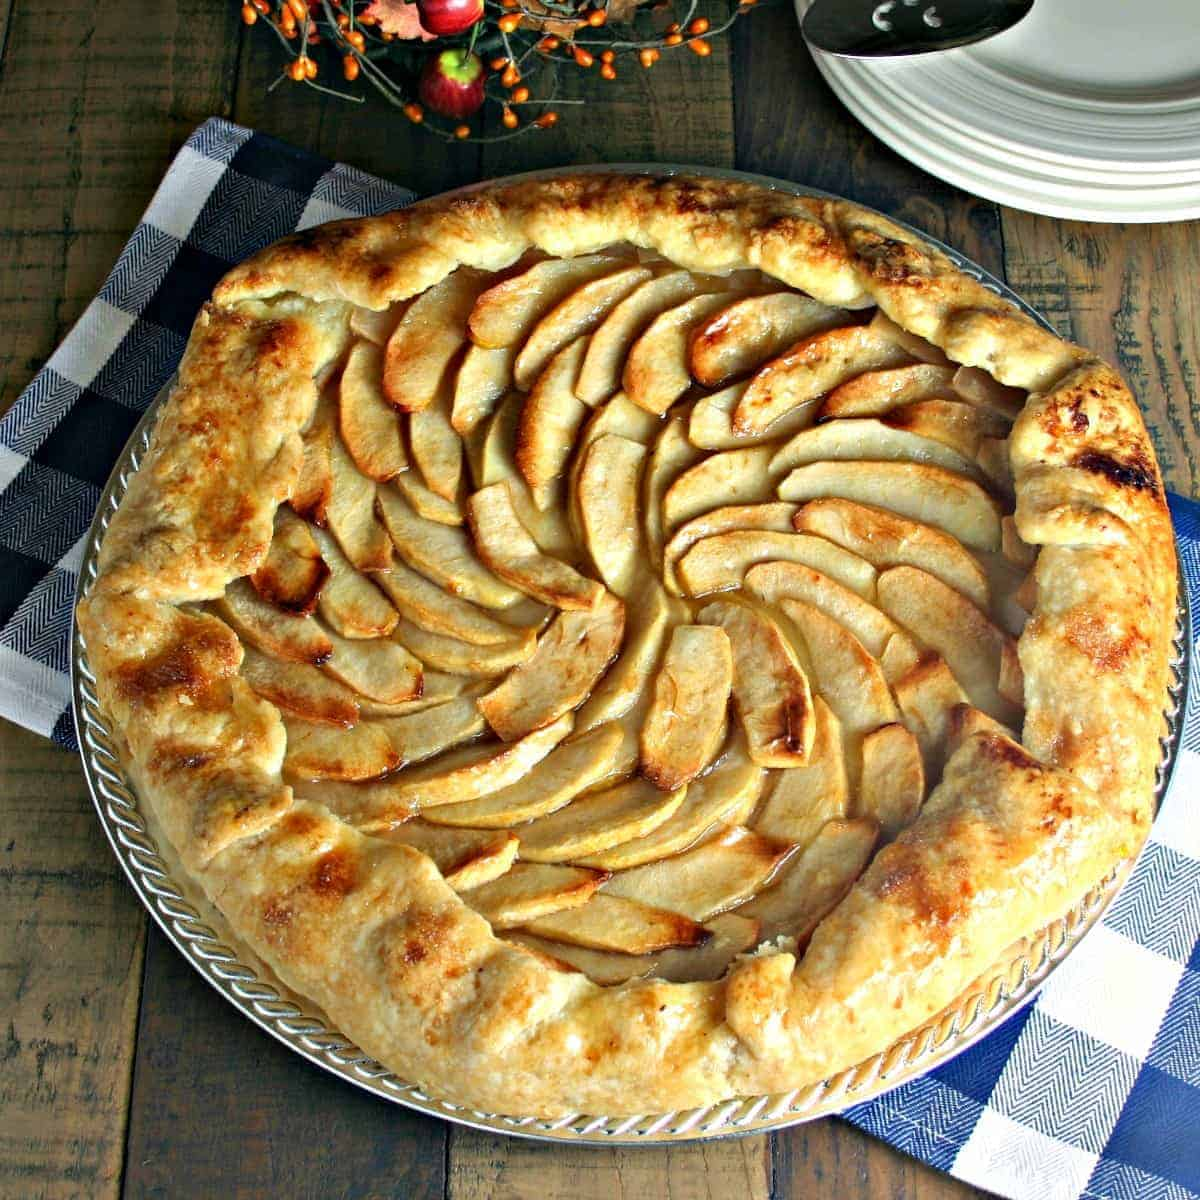 Rustic Apple Pie Rustic Apple Pie new pics